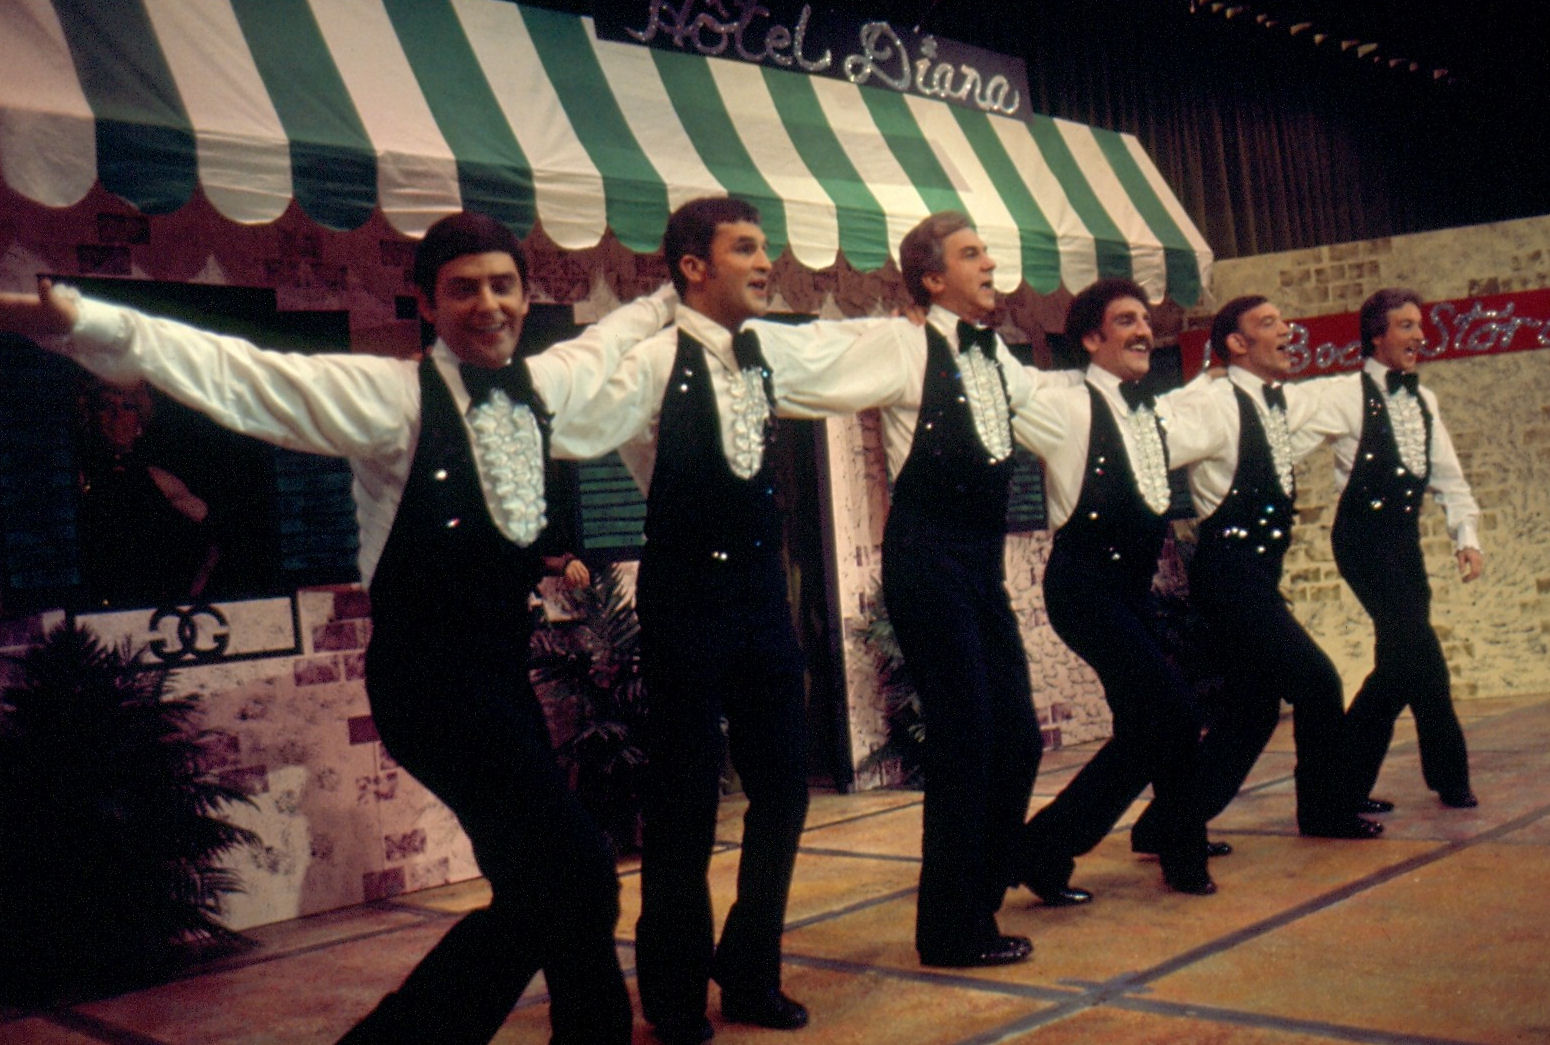 Dianas 3 - 1970's Photos 13 - 1977 French Waiters.jpg